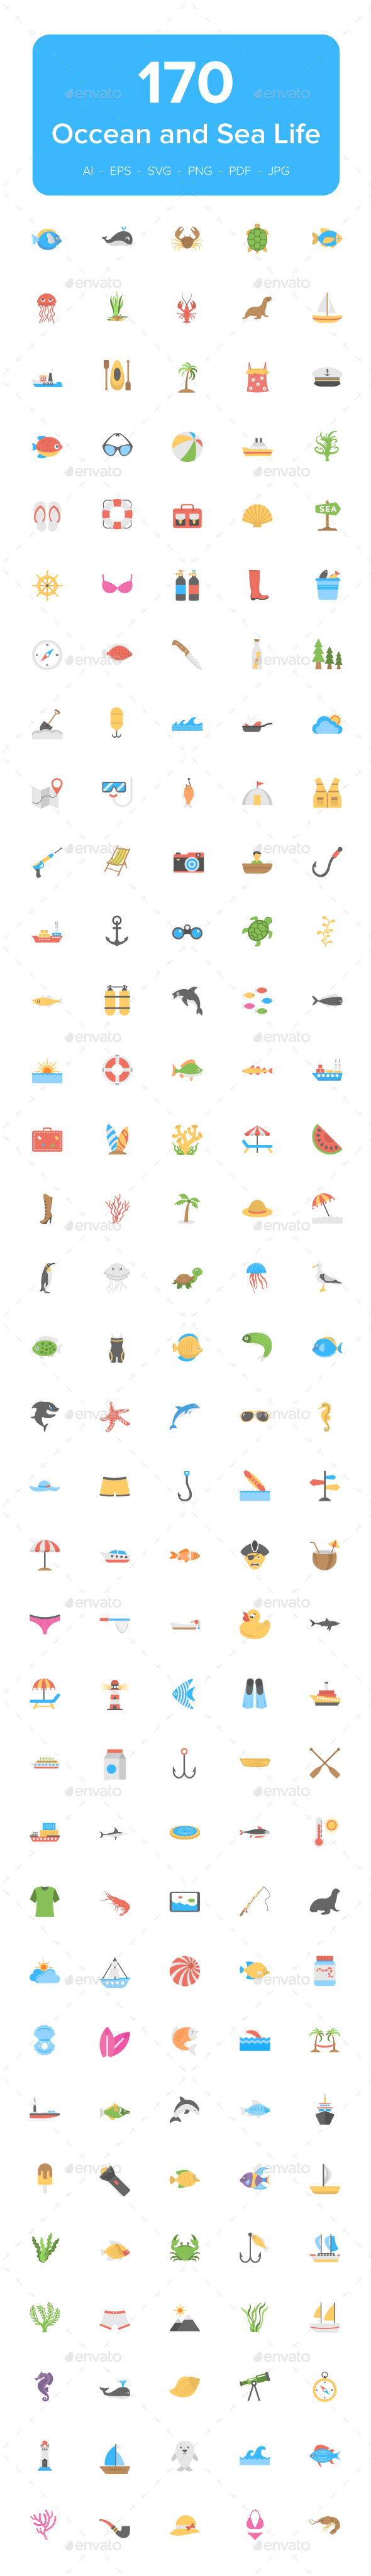 GraphicRiver 170 Ocean and Sea Life Vector Icons 21125394